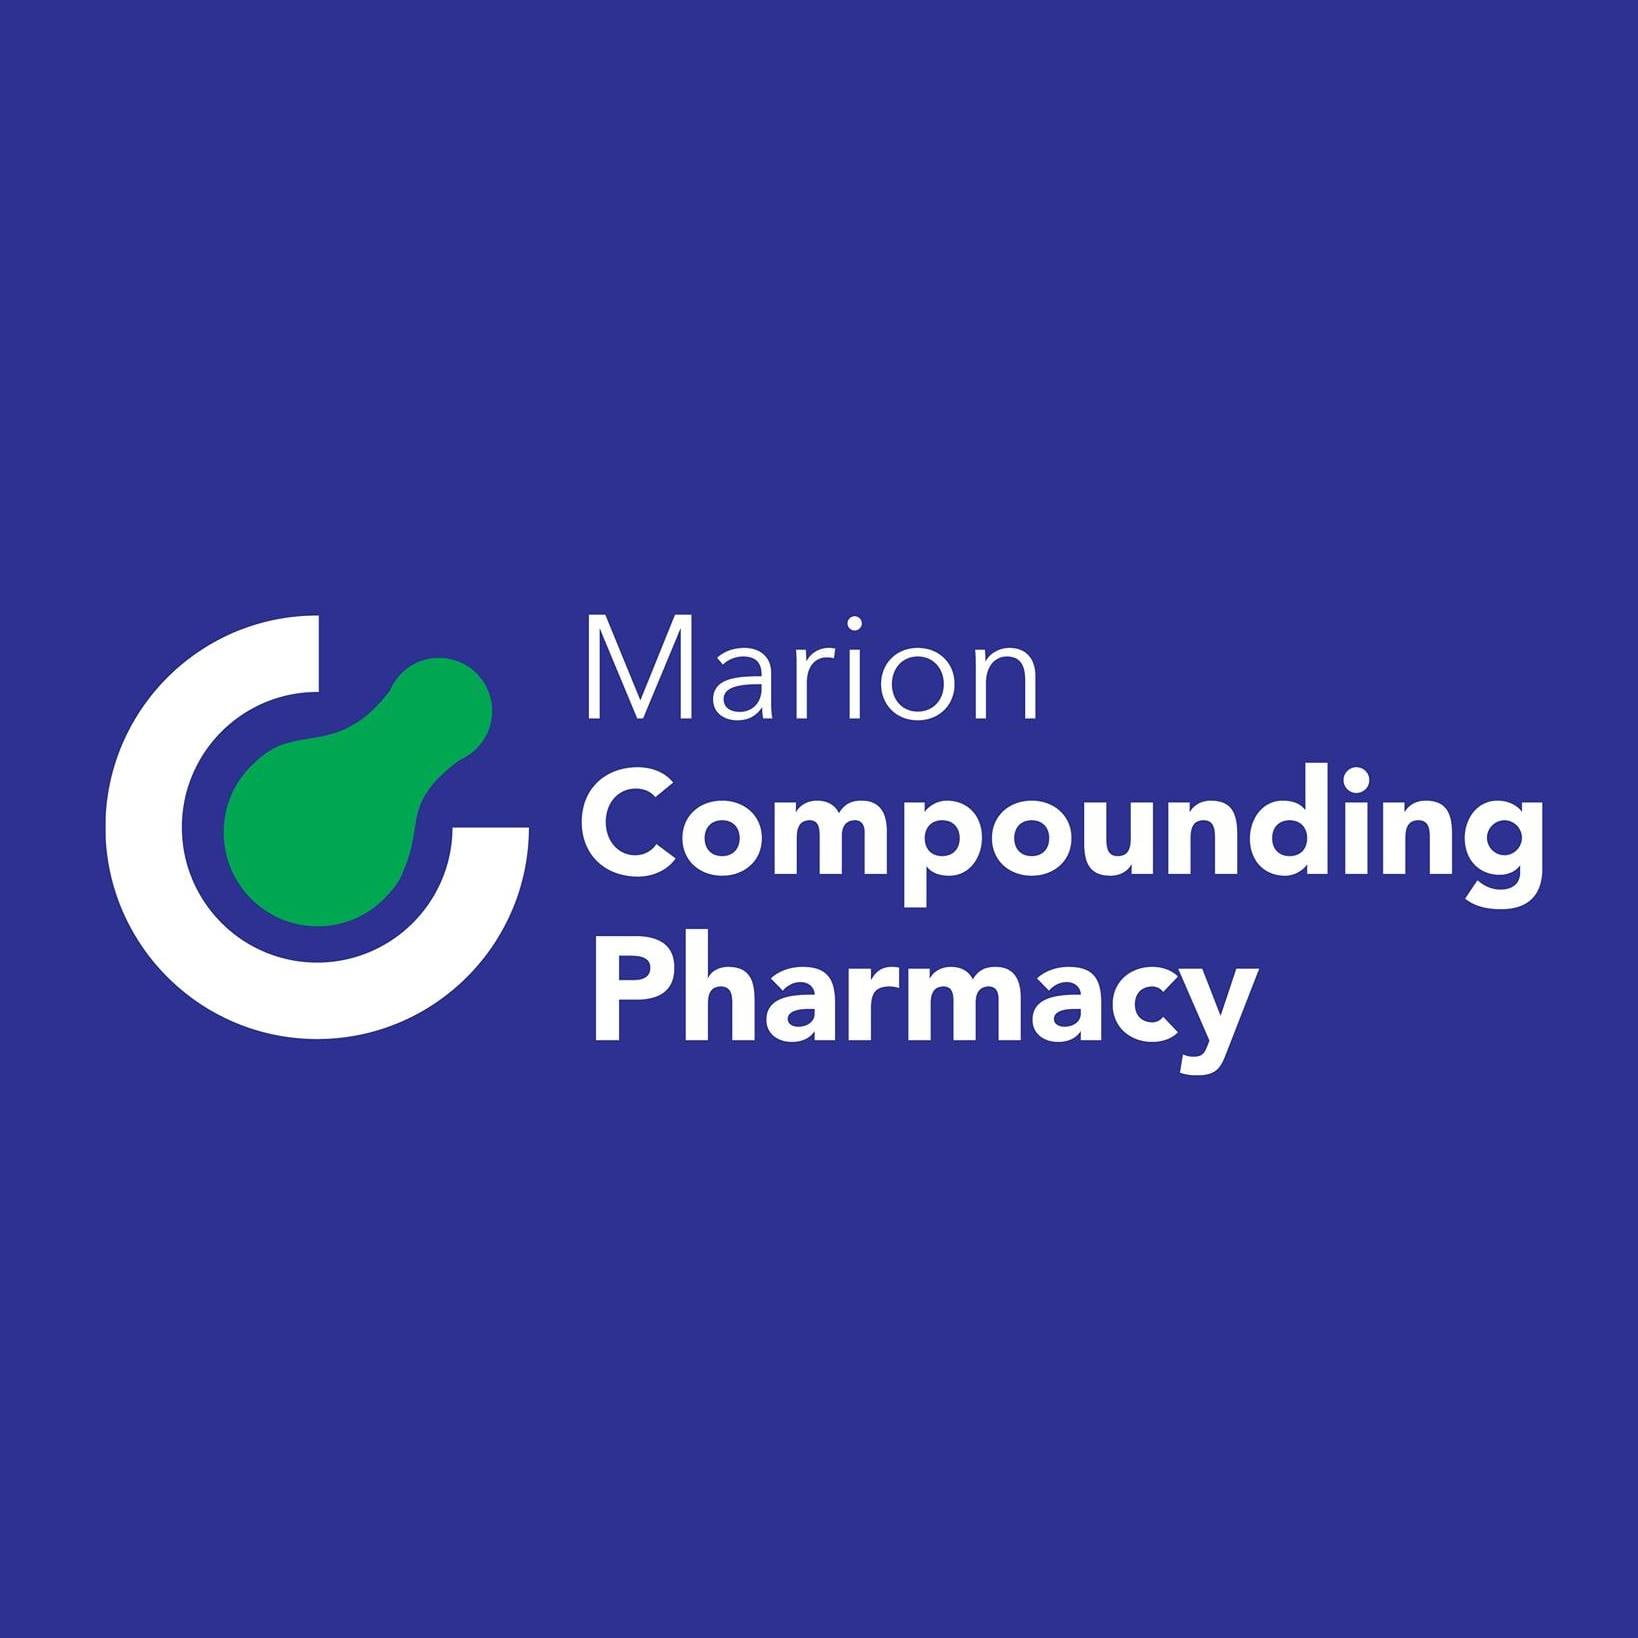 Marion Compounding Pharmacy